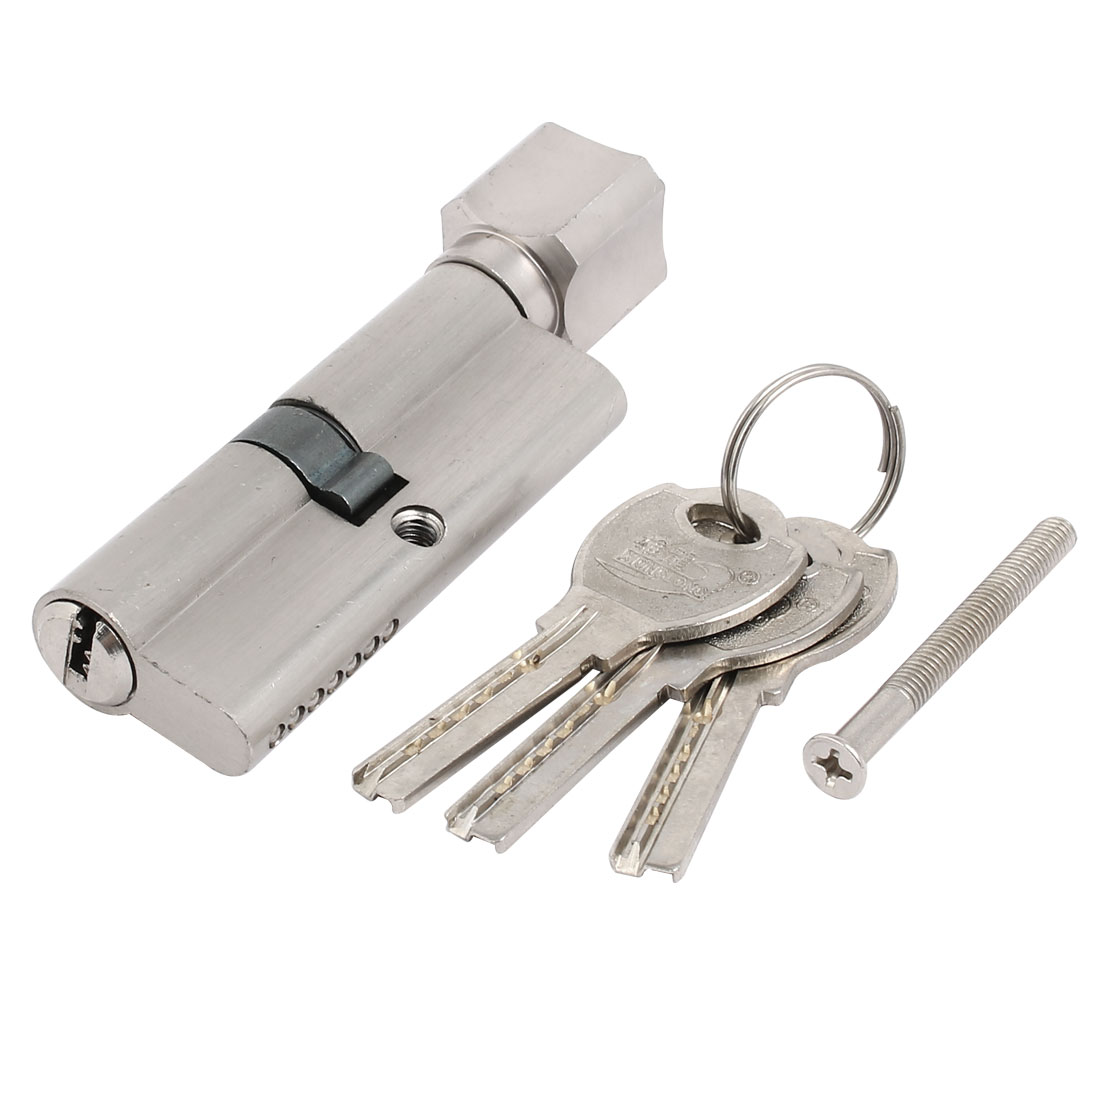 95mm Length Home Security Barrel Cylinder Door Lock Core Silver Tone w Keys